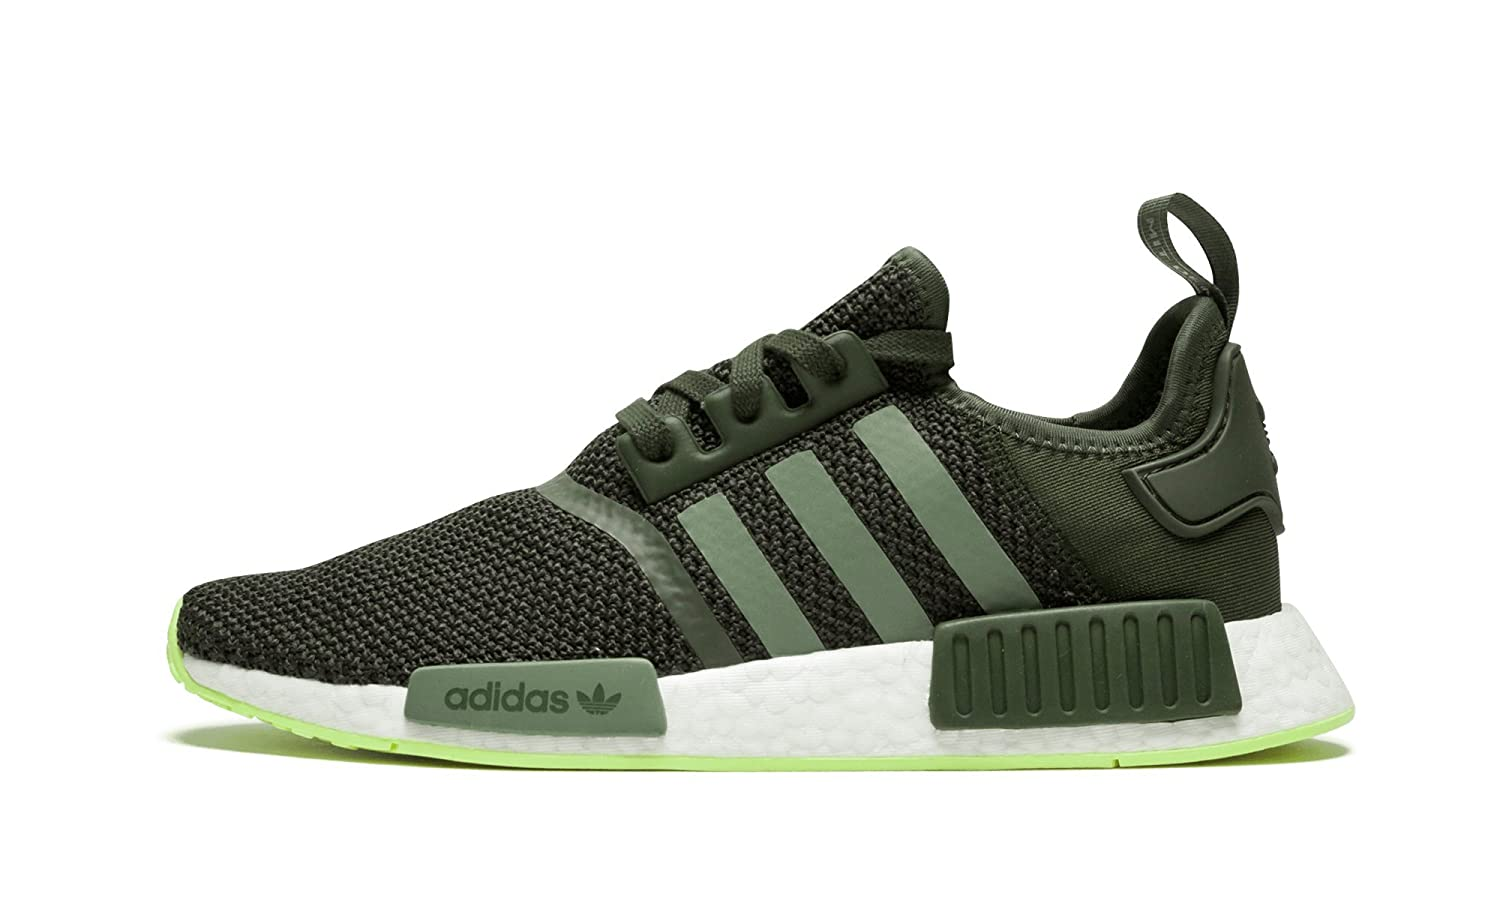 size 40 922ea 31630 Amazon.com   adidas Originals NMD R1 - Men s (10.5 (M) US, Night Cargo Base  Green Semi Frozen Yellow)   Fashion Sneakers